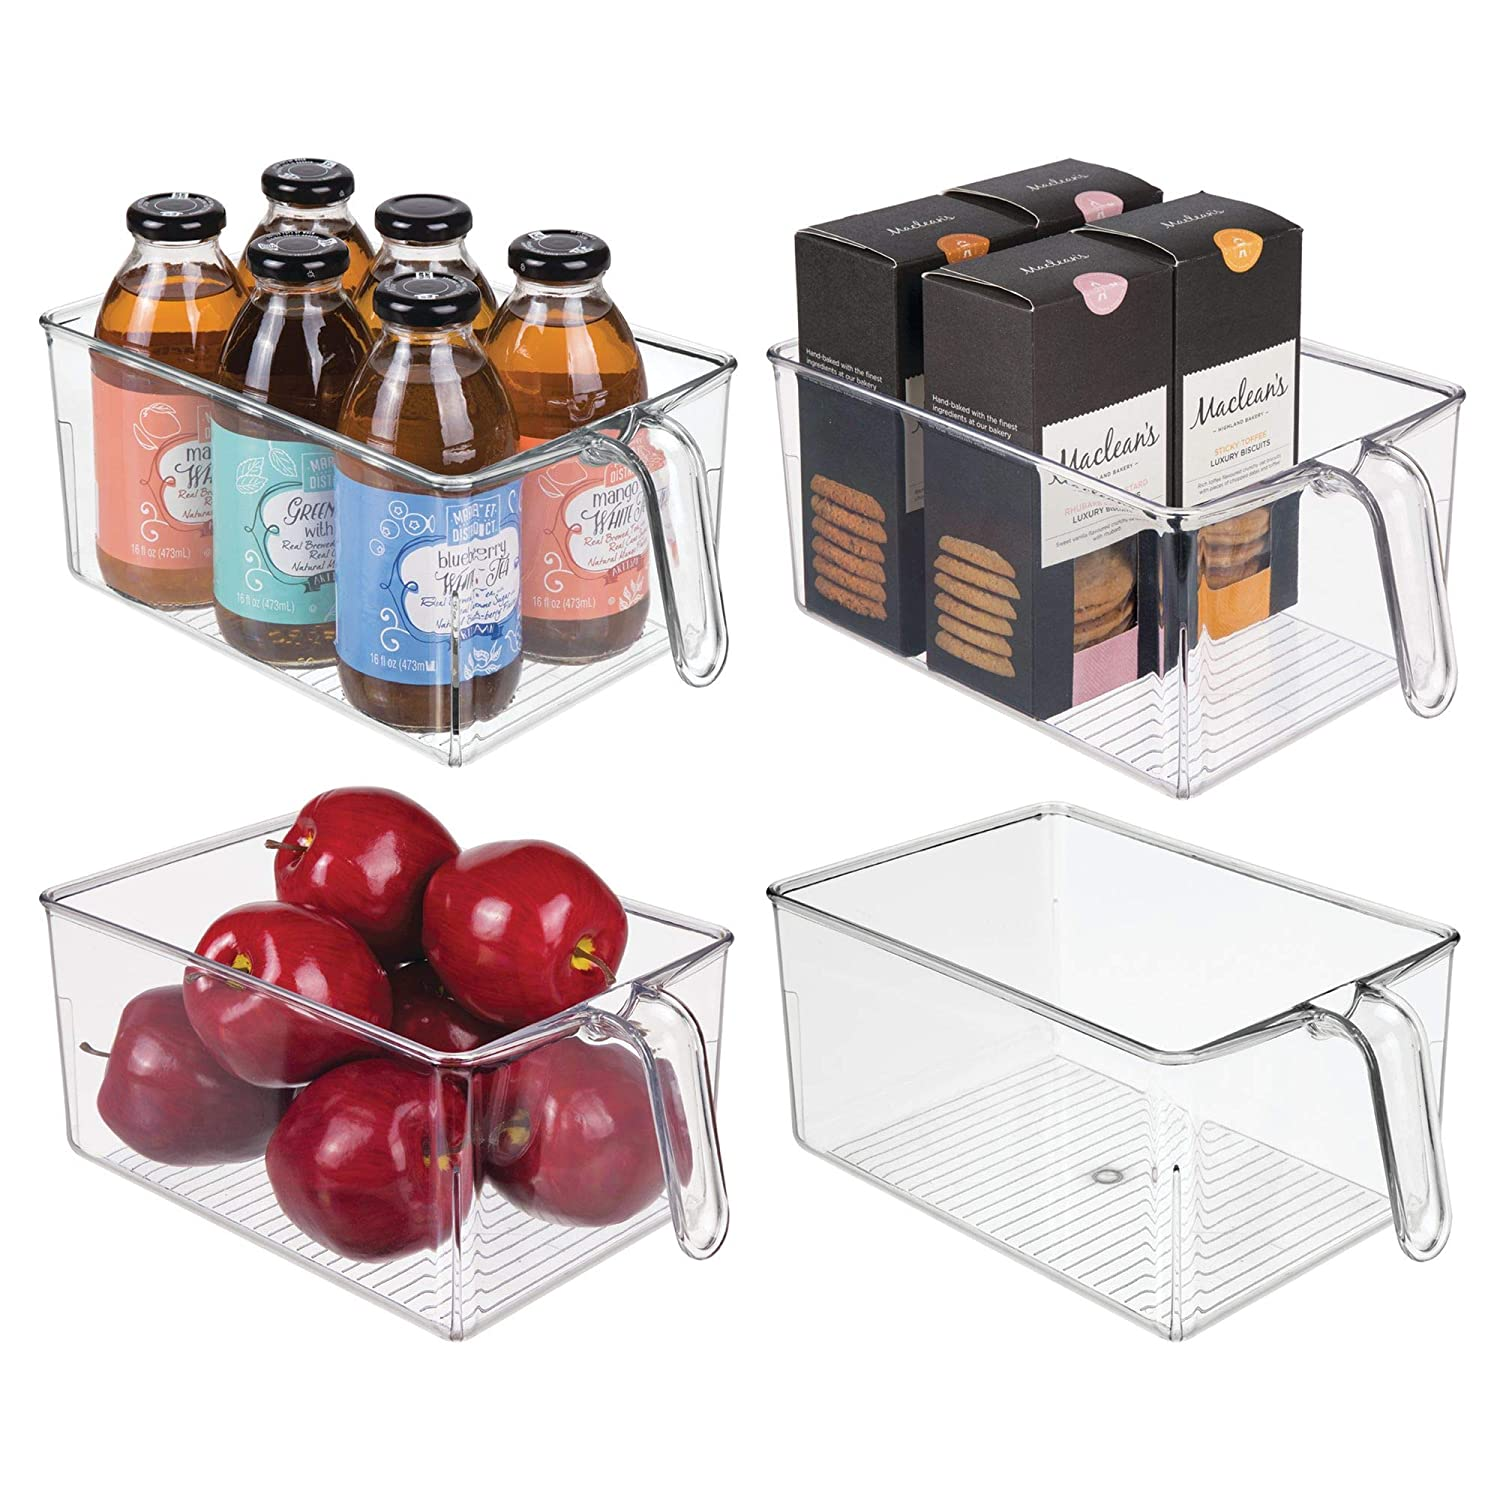 mDesign Plastic Kitchen Pantry Cabinet Refrigerator Food Storage Organizer Bin Holder with Handle - for Organizing Individual Packets, Snacks Food, Produce, Pasta - 4 Pack, Large, Clear